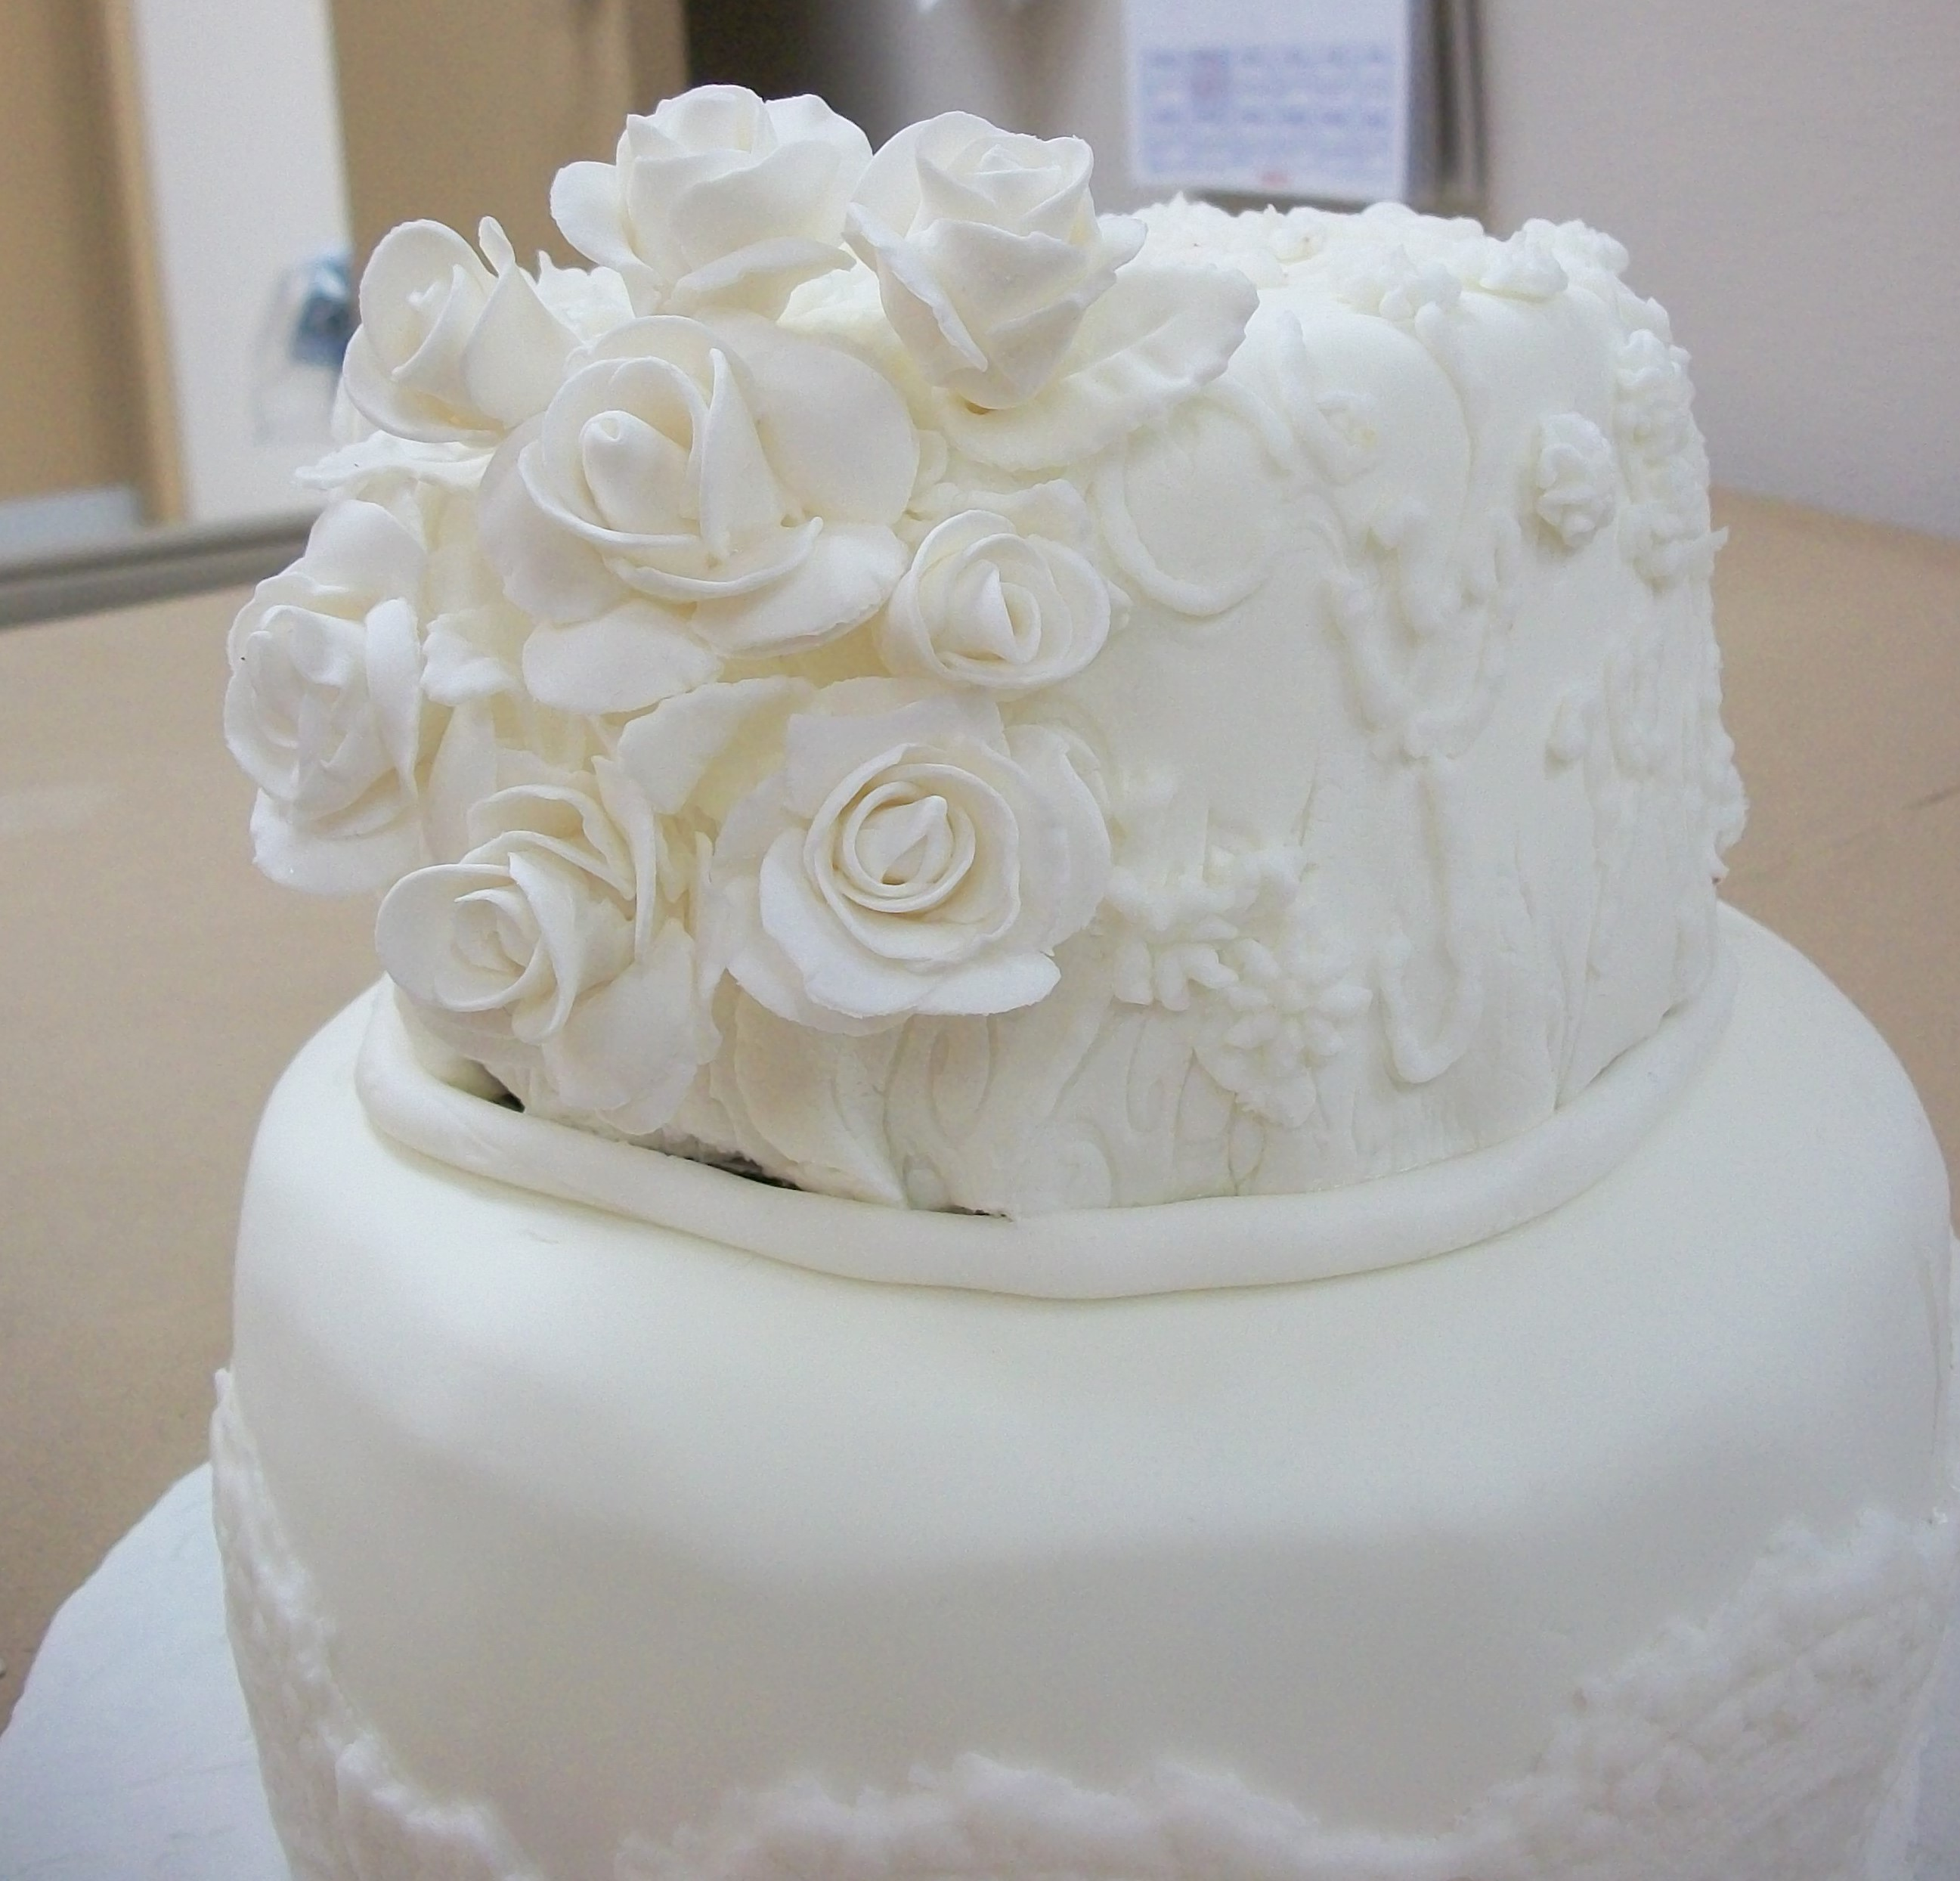 7 Photos of Fondant Cakes Gone Wrong